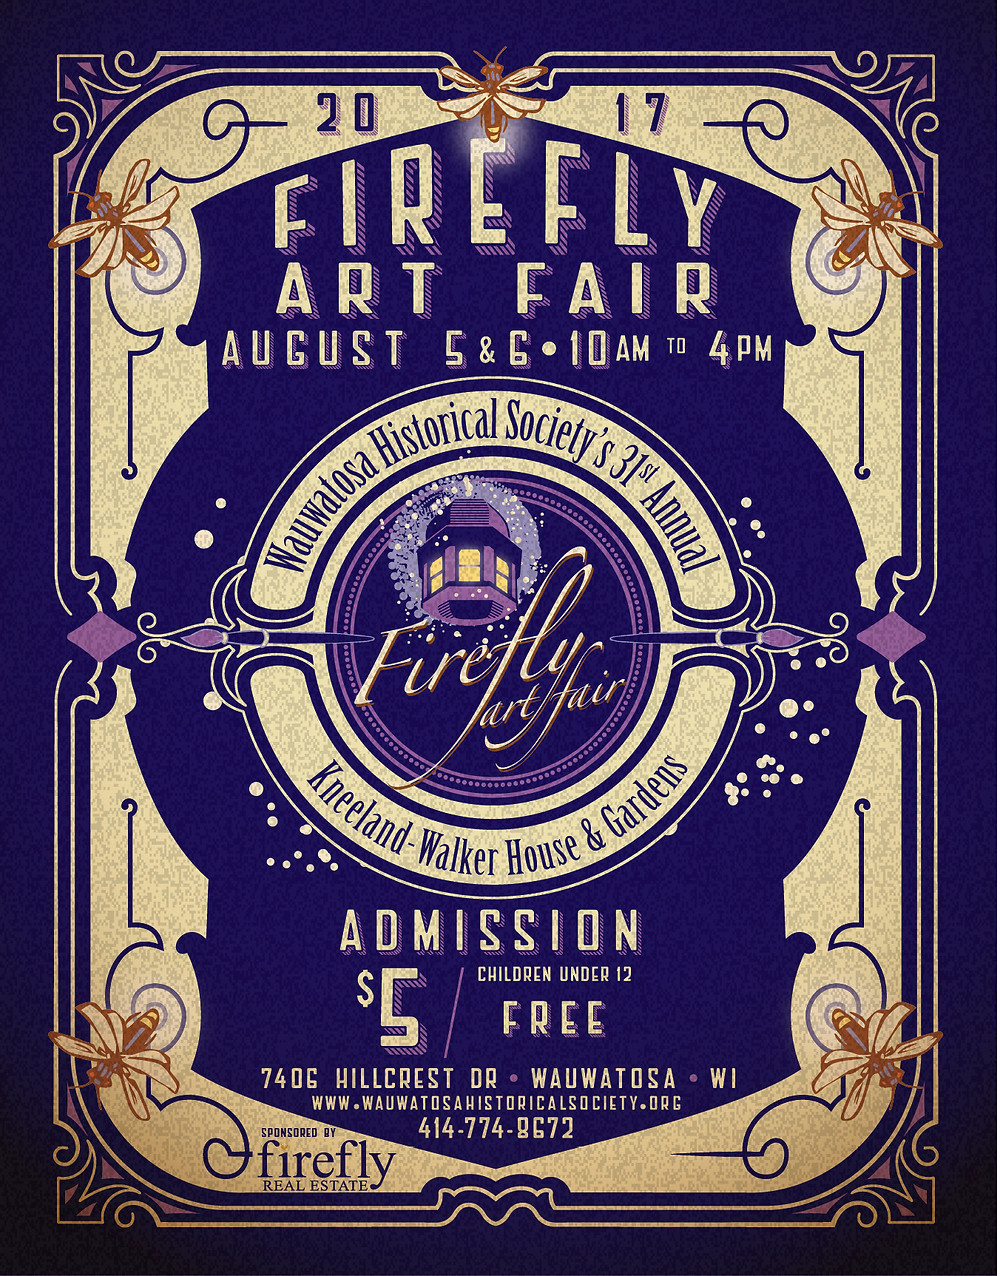 The Firefly art fair will feature original paintings from several collections, posters and notecards